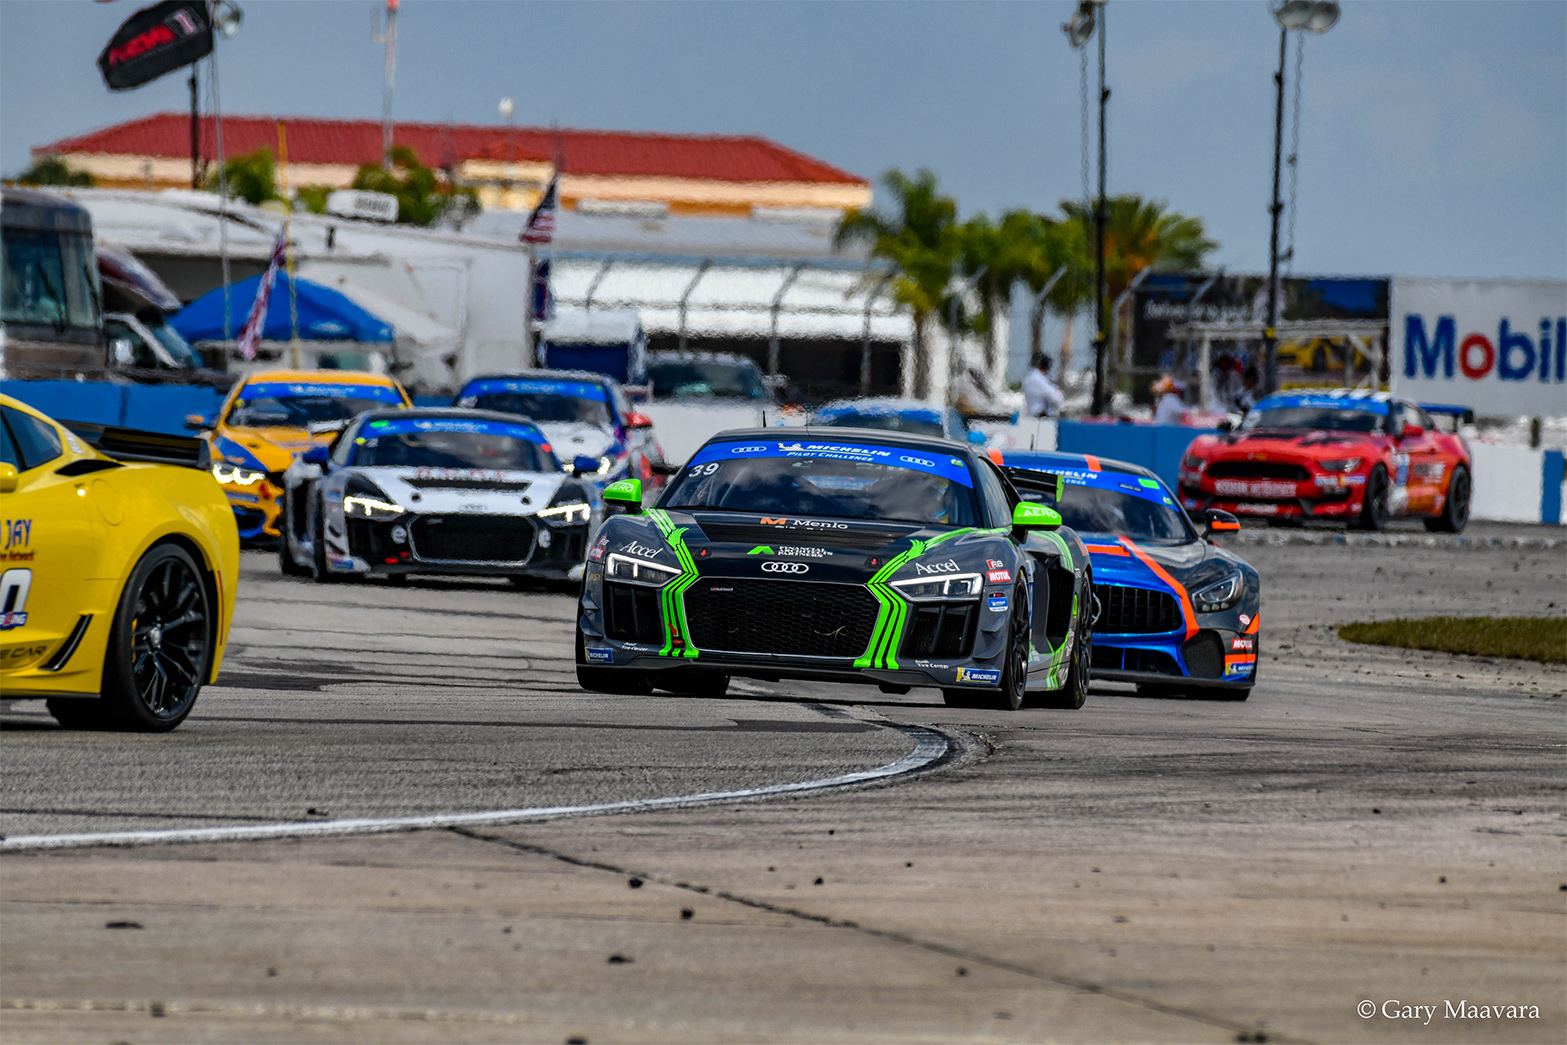 TrackWorthy - Michelin_race_#39_Audi R8 GT4 leads the field on the pace lap